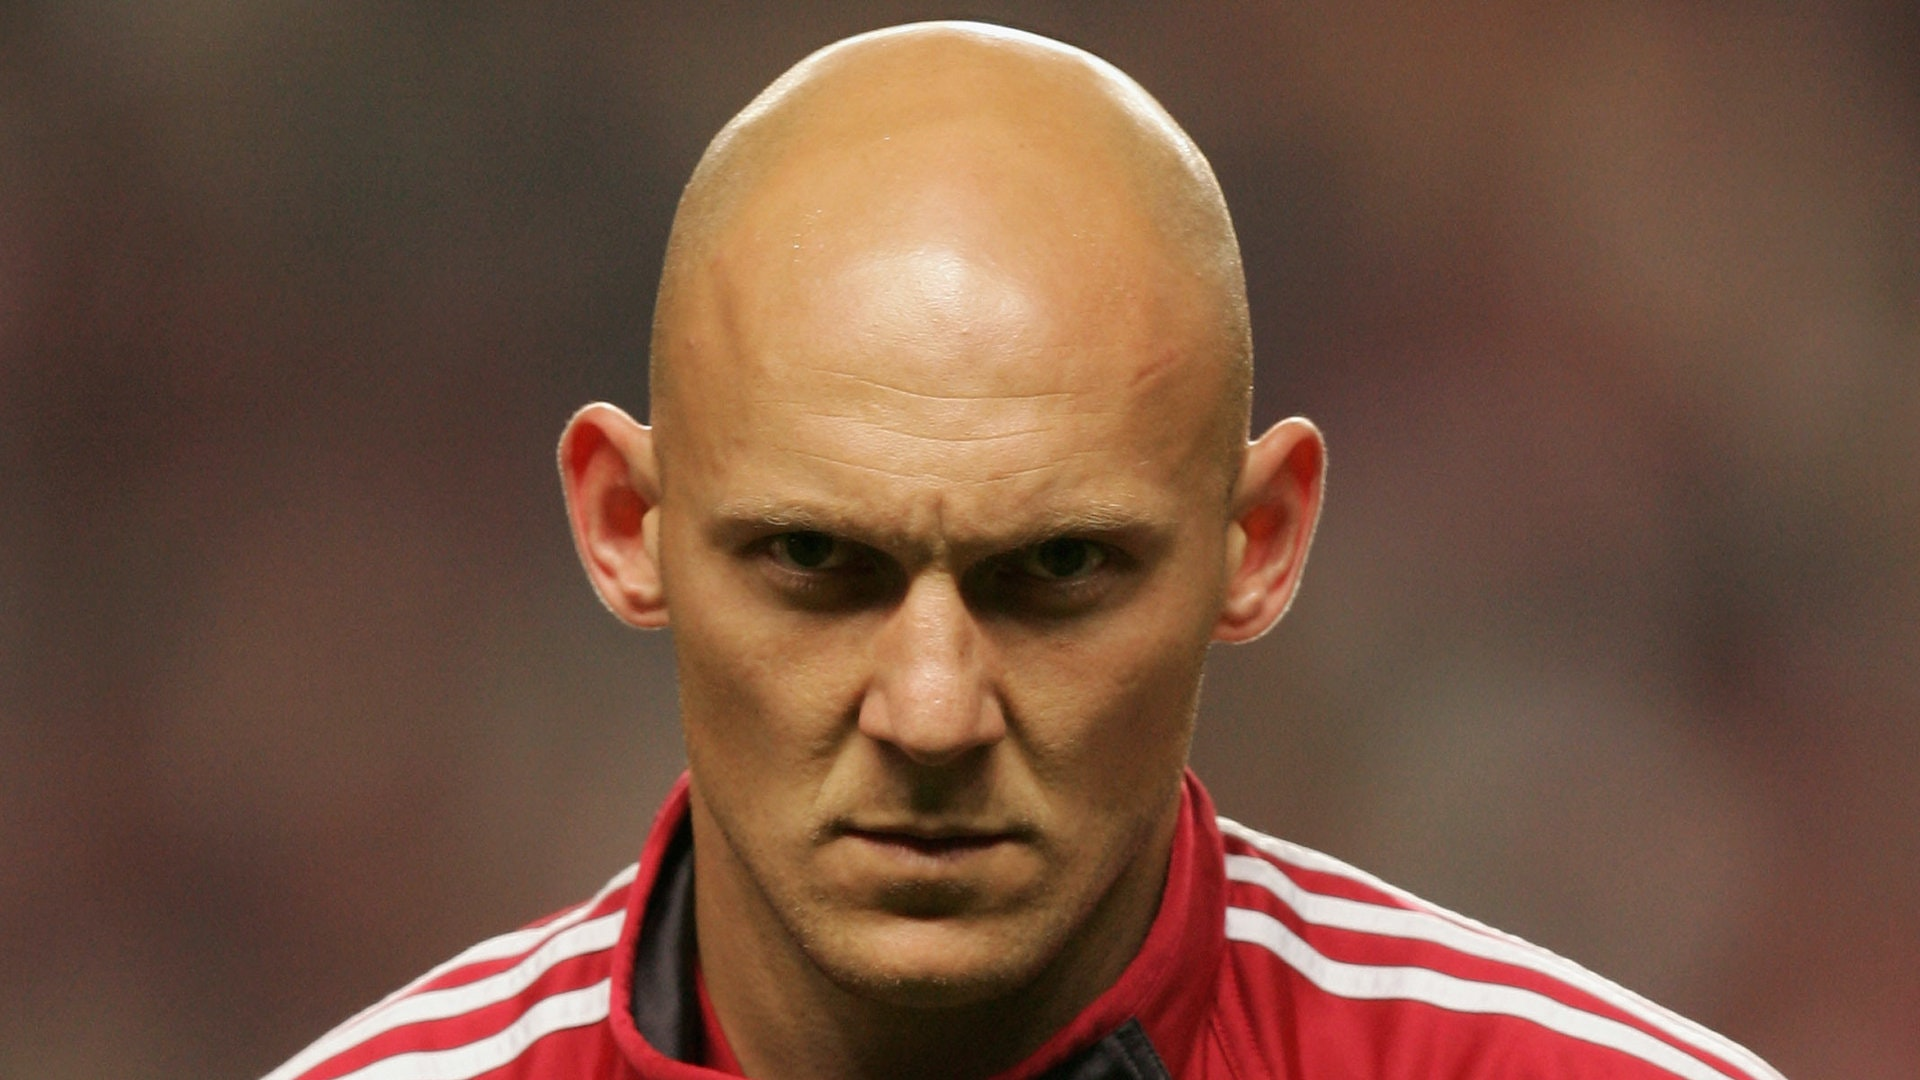 COPENHAGEN, DENMARK - OCTOBER 08:  Thomas Gravesen of Denmark seen before the FIFA World Cup 2006 Group 2 Qualifier match between Denmark and Greece at the Parken Stadium on October 8, 2005 in Copenhagen, Denmark.  (Photo by Martin Rose/Bongarts/Getty Images)